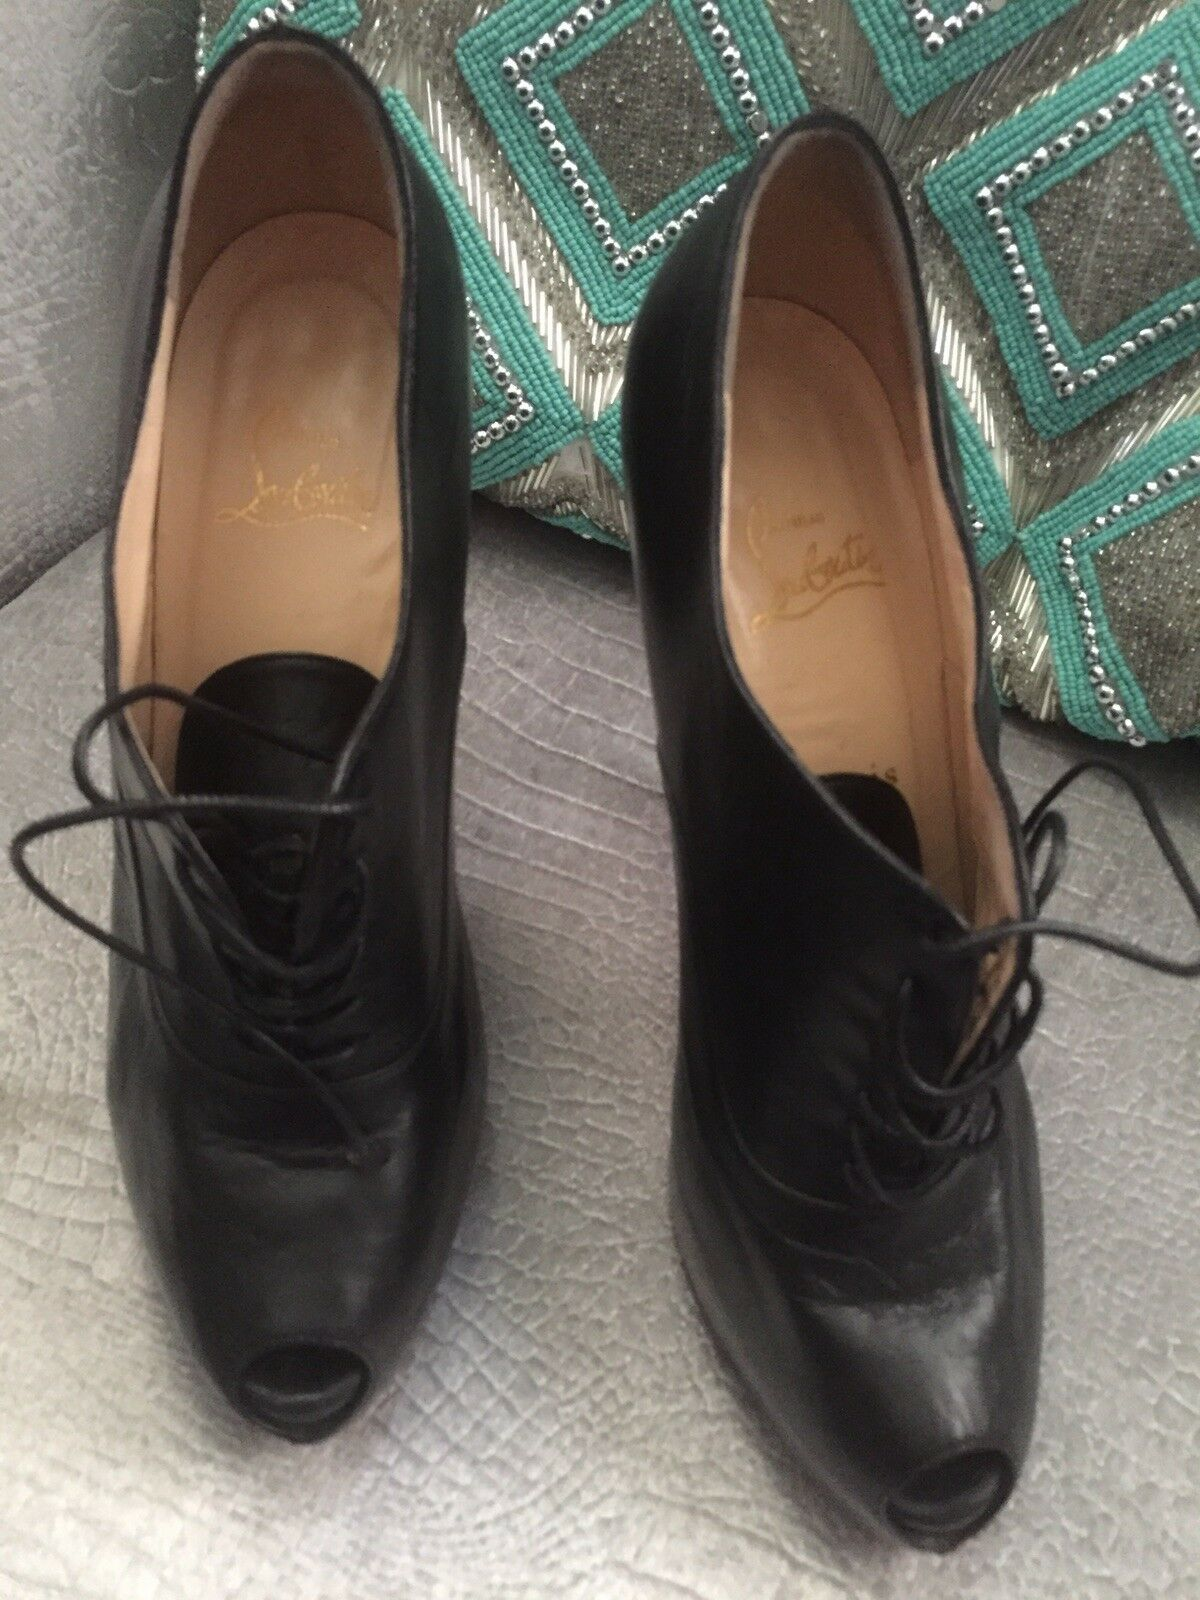 Authentic Christian Louboutin Miss Poppins 140 Bottines 40 1 2 us 39